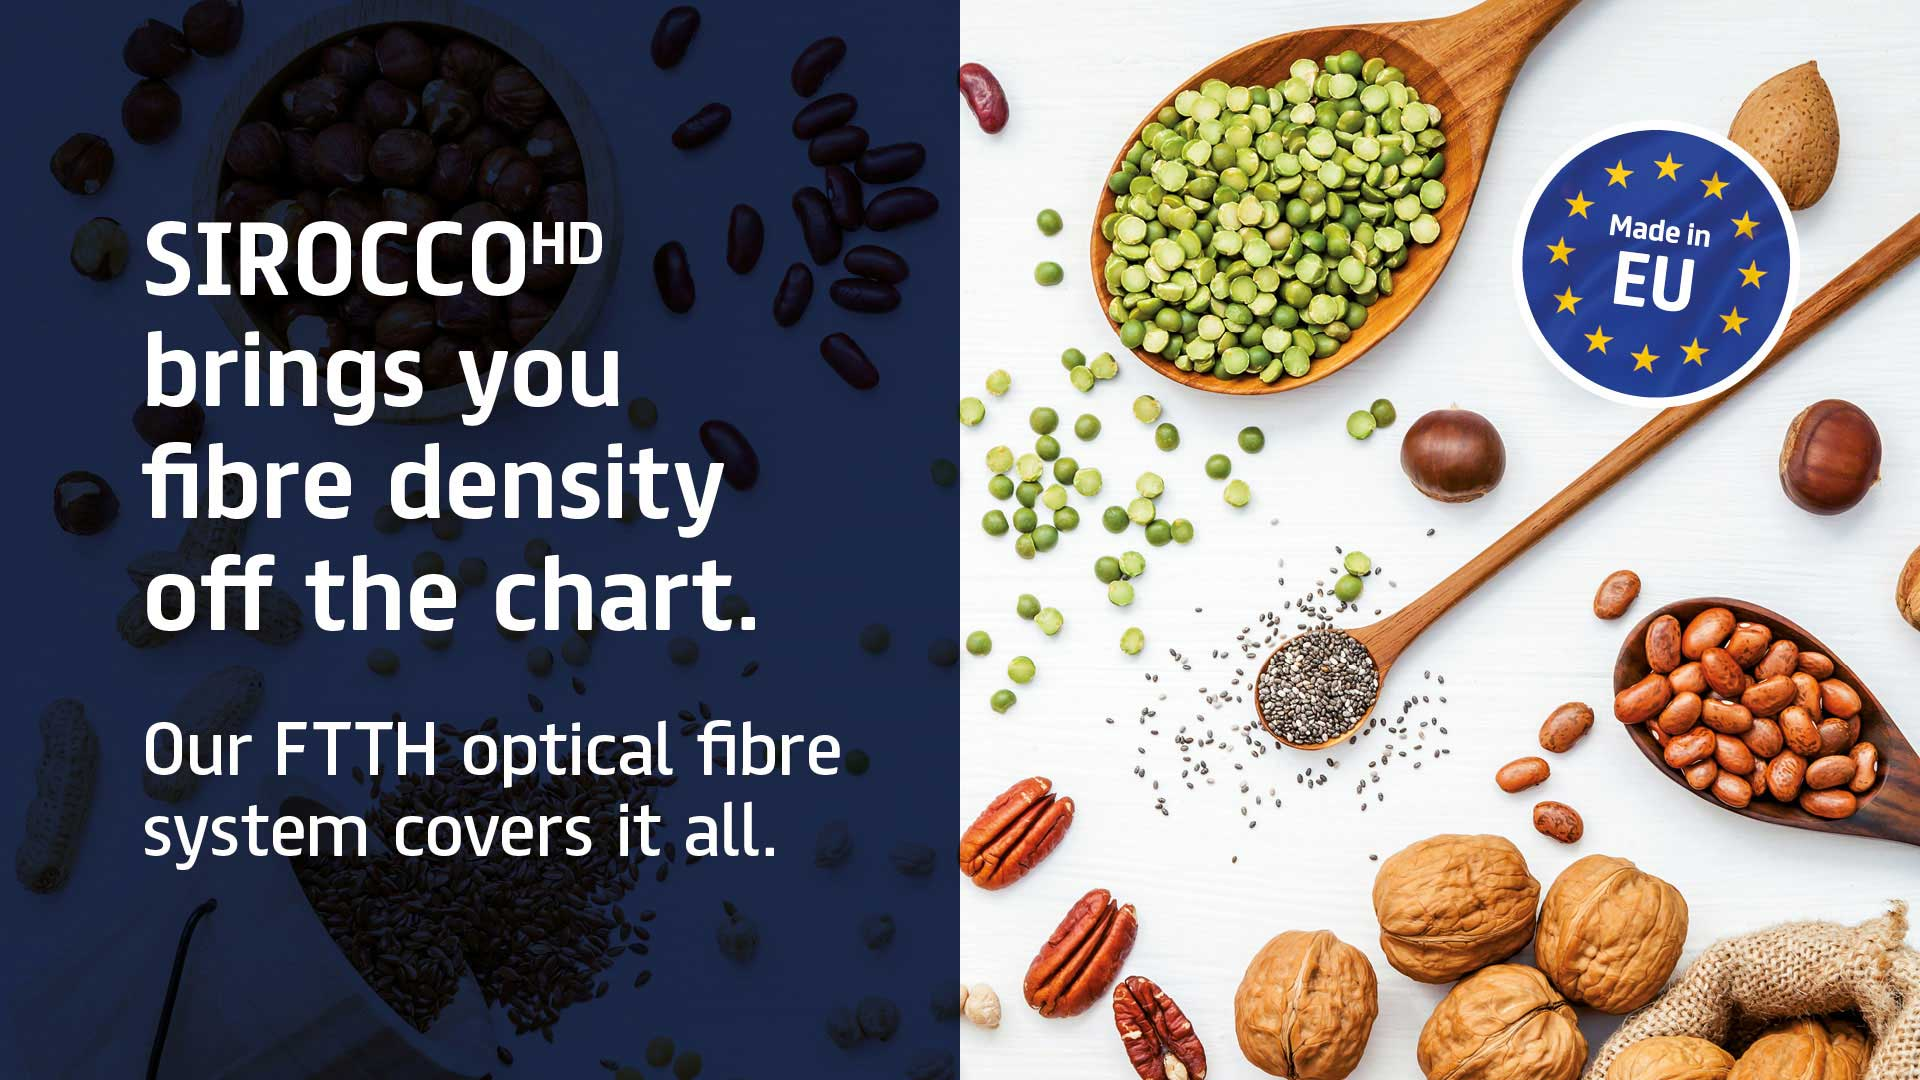 SIROCCOHD brings you fibre density off the chart